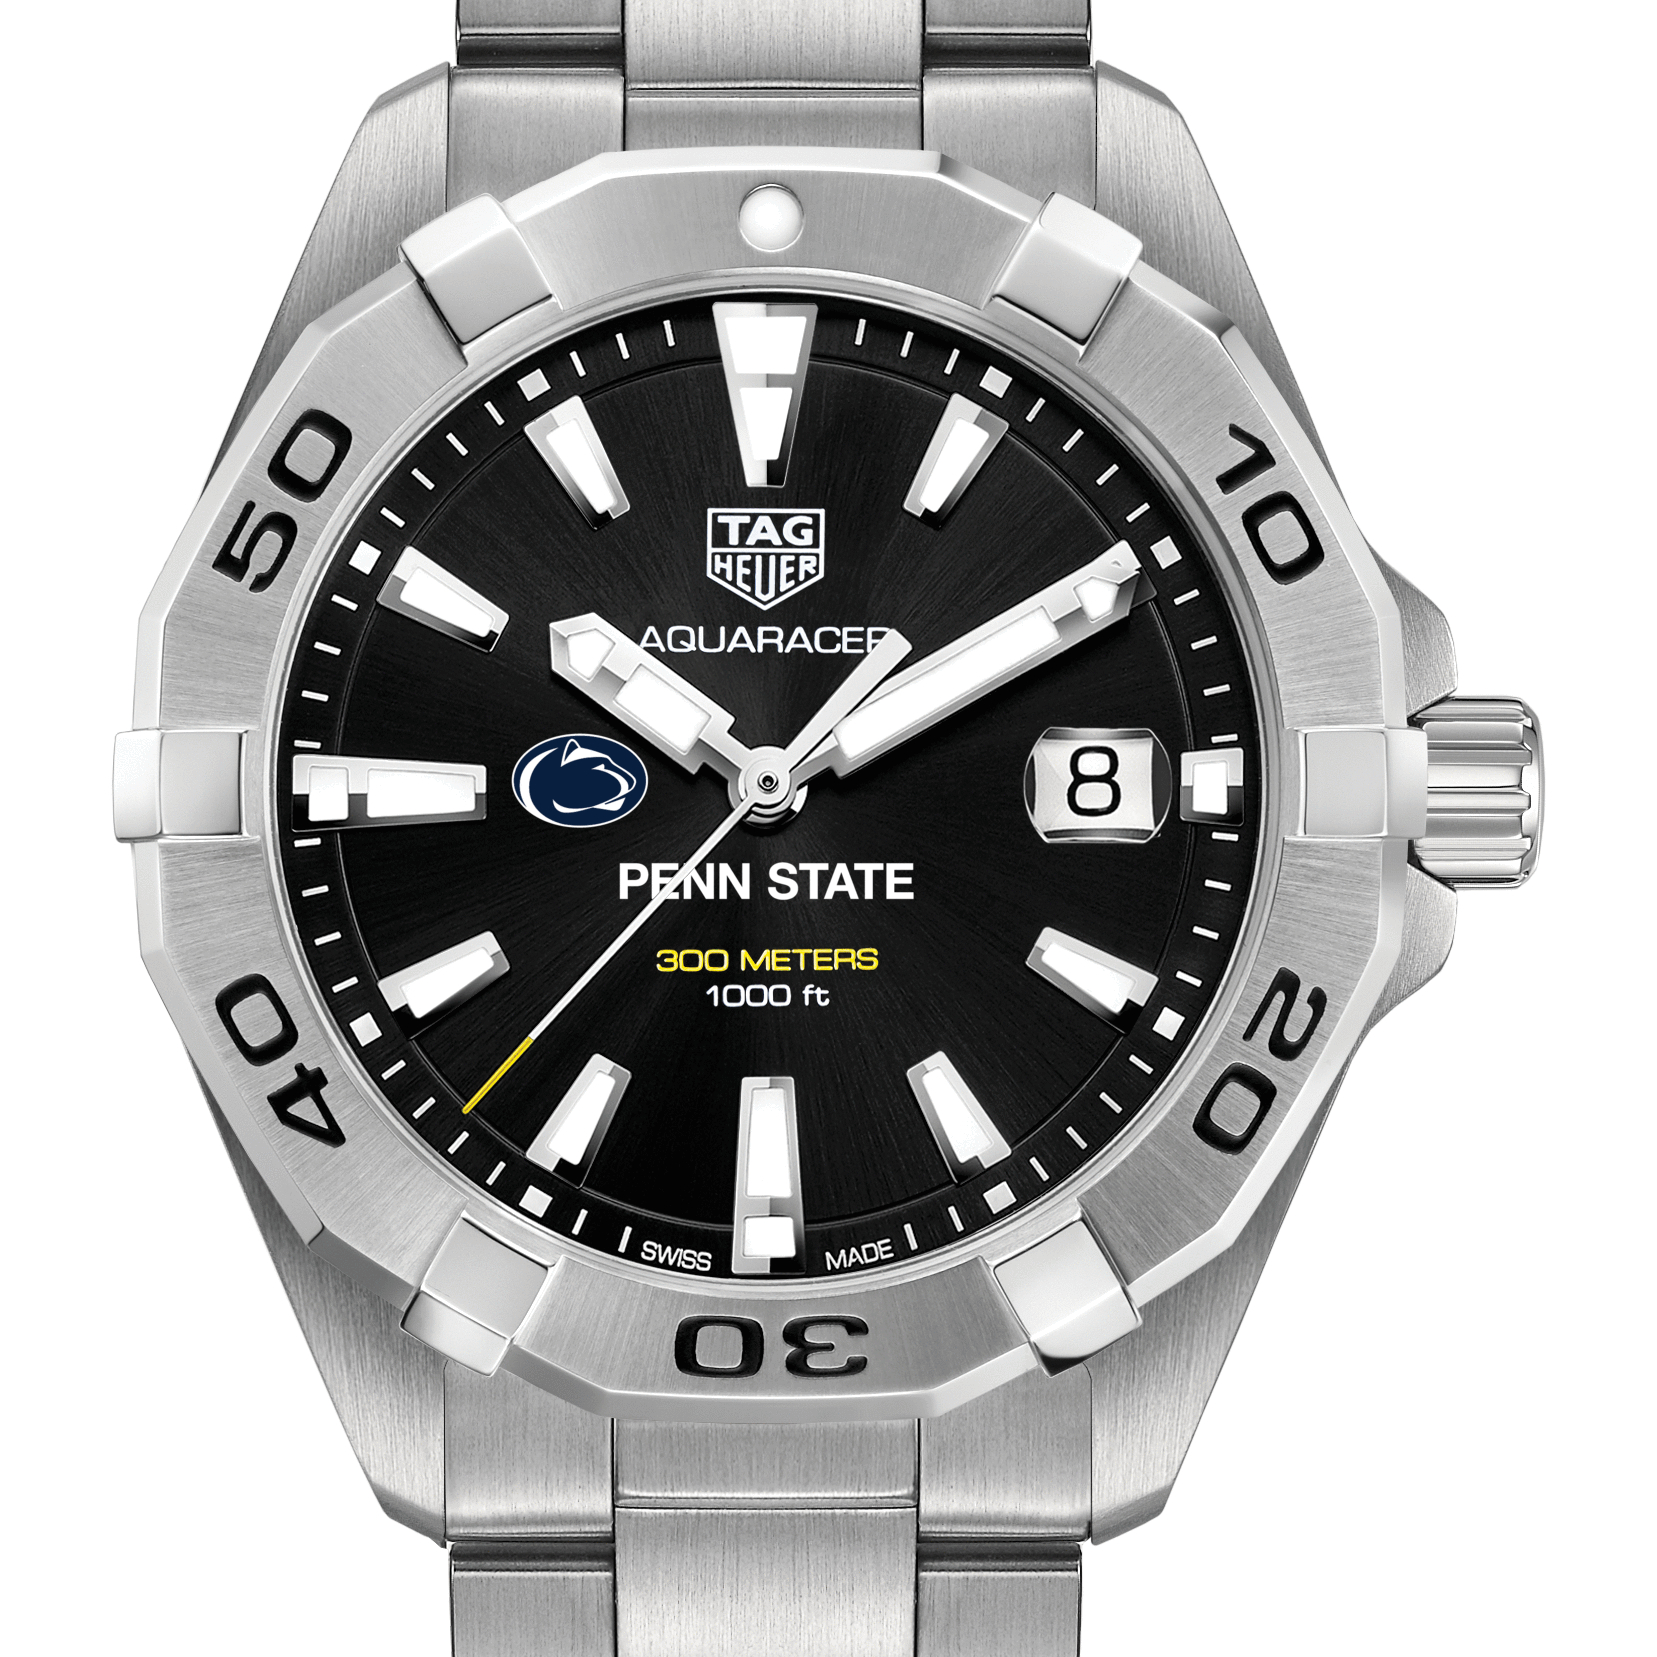 Penn State Men's TAG Heuer Steel Aquaracer with Black Dial - Image 1